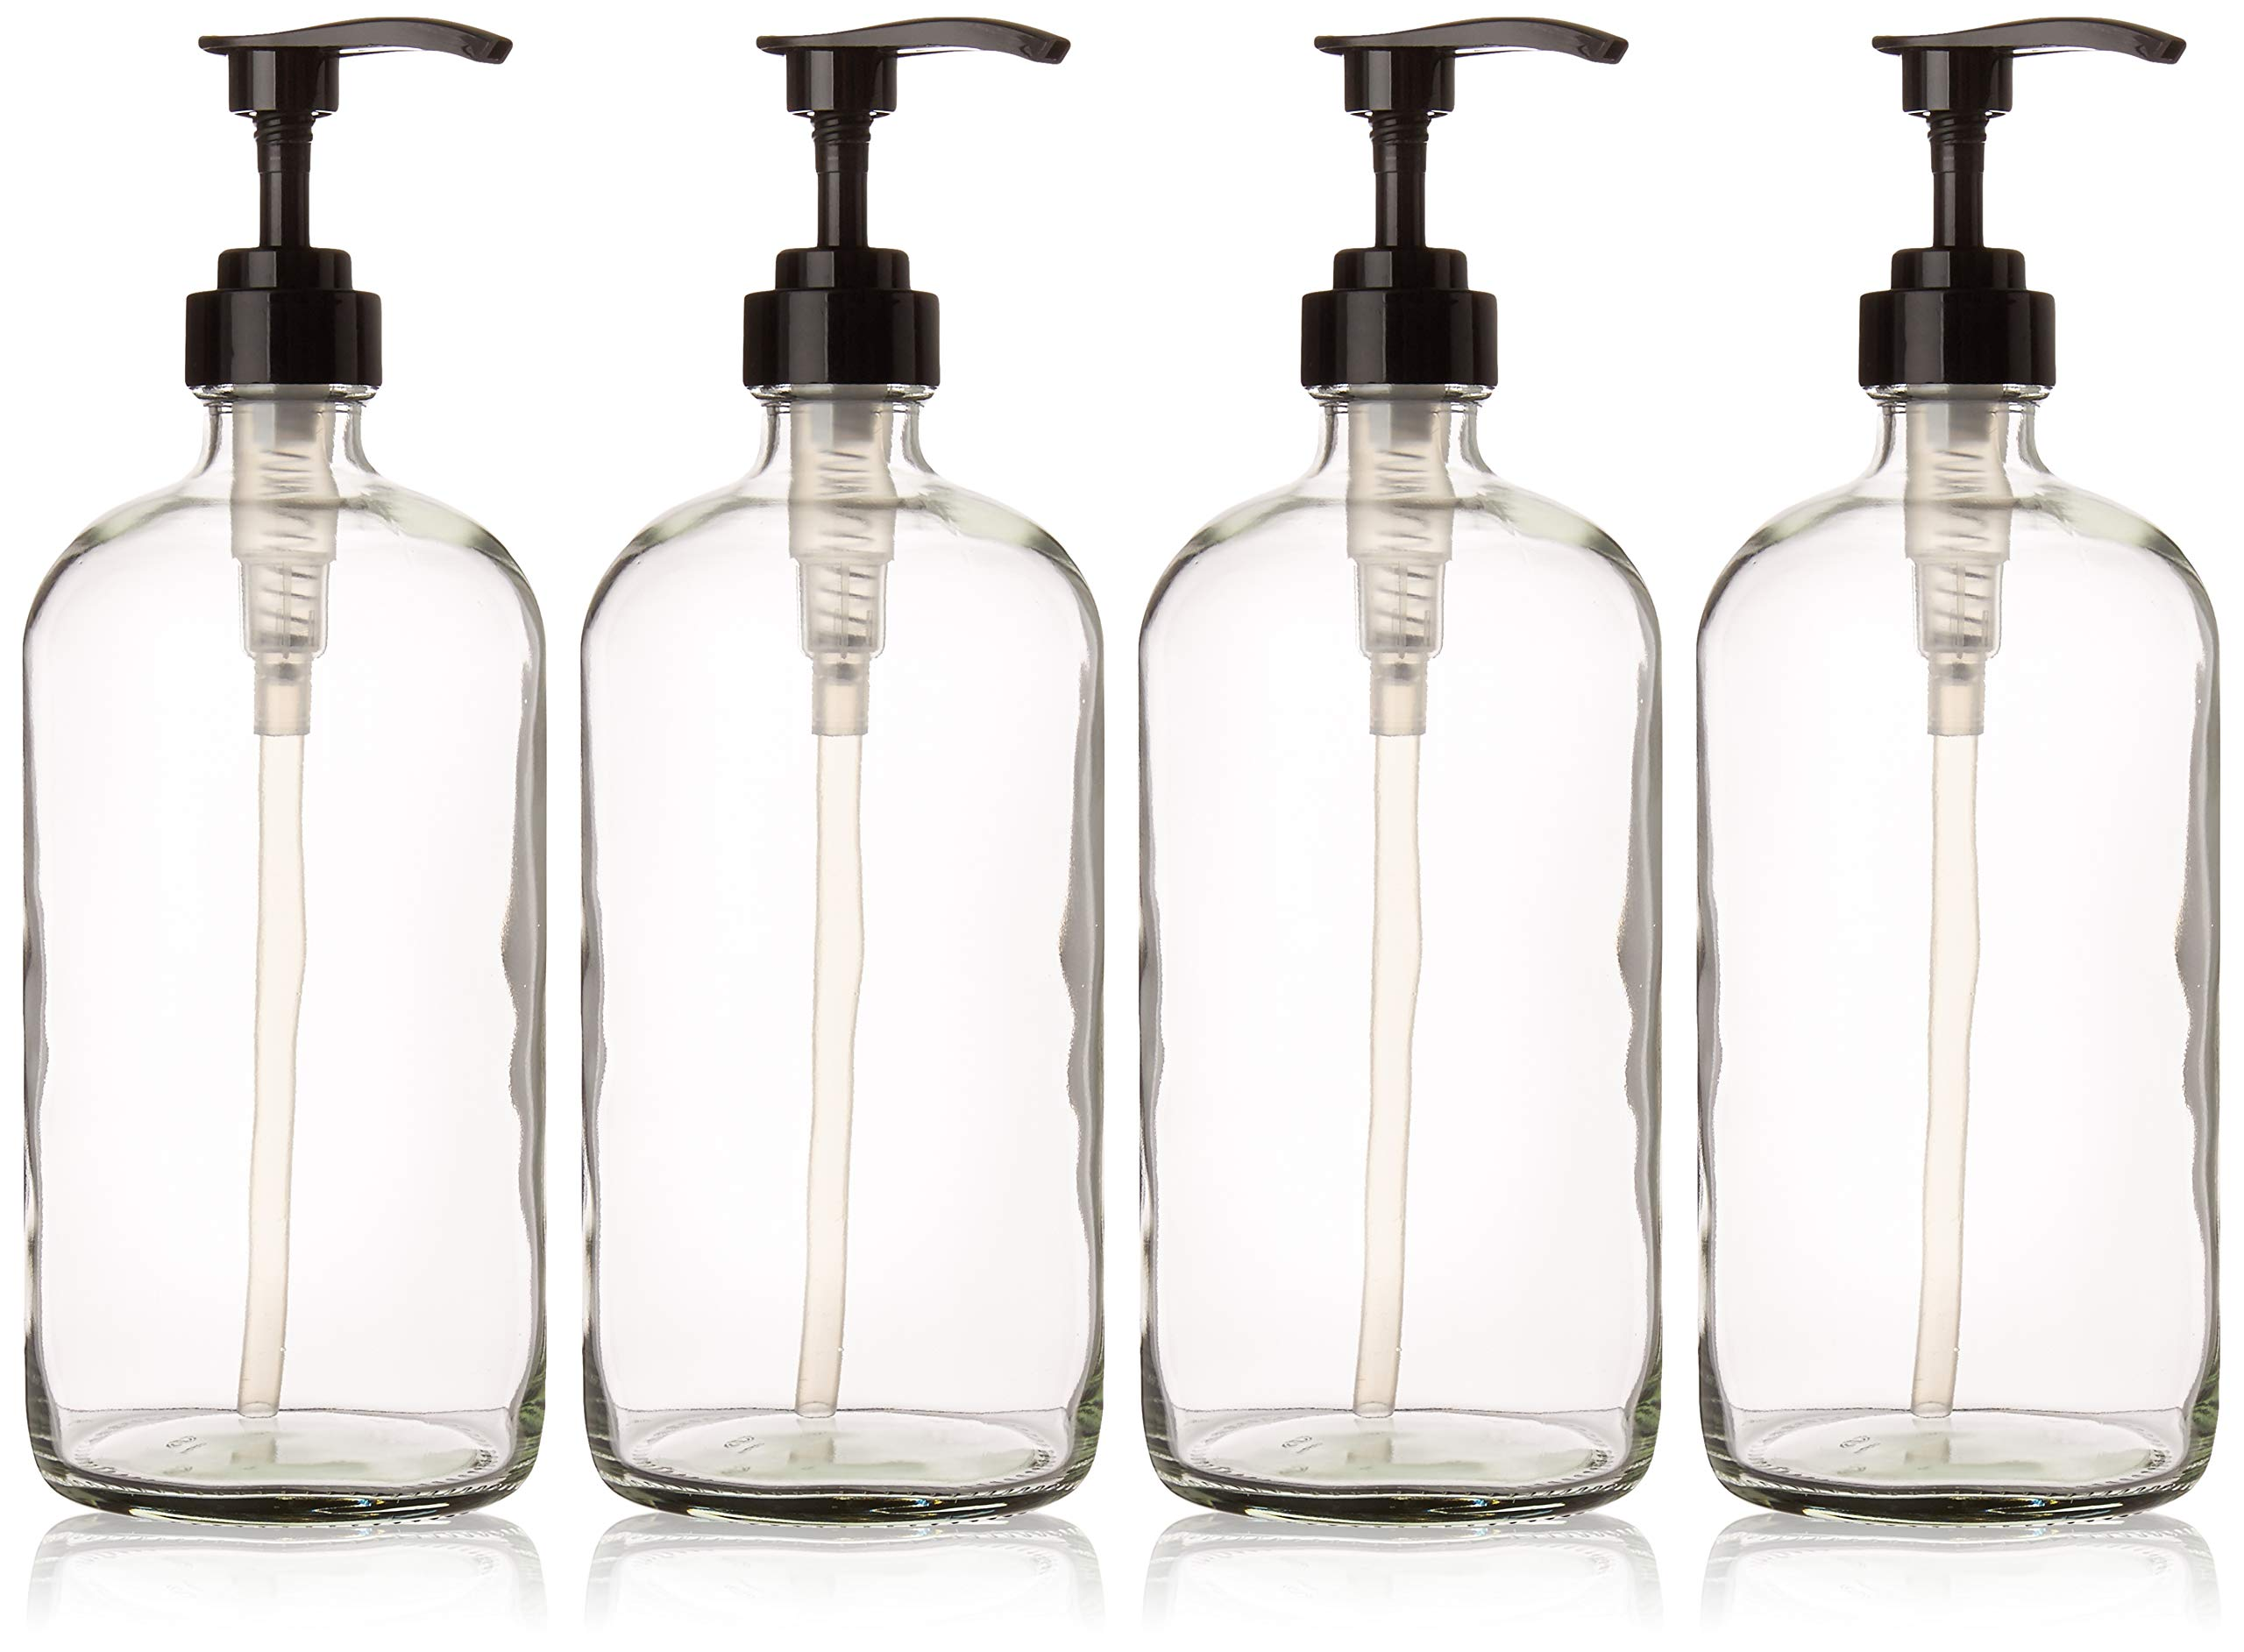 32 Ounce Large Clear Glass Boston Round Bottles with Black Pumps. Great for Lotions, Soaps, Oils, Sauces and DIY Laundry Detergent - Food Safe and Medical Grade - by kitchentoolz (Pack of 4) by kitchentoolz